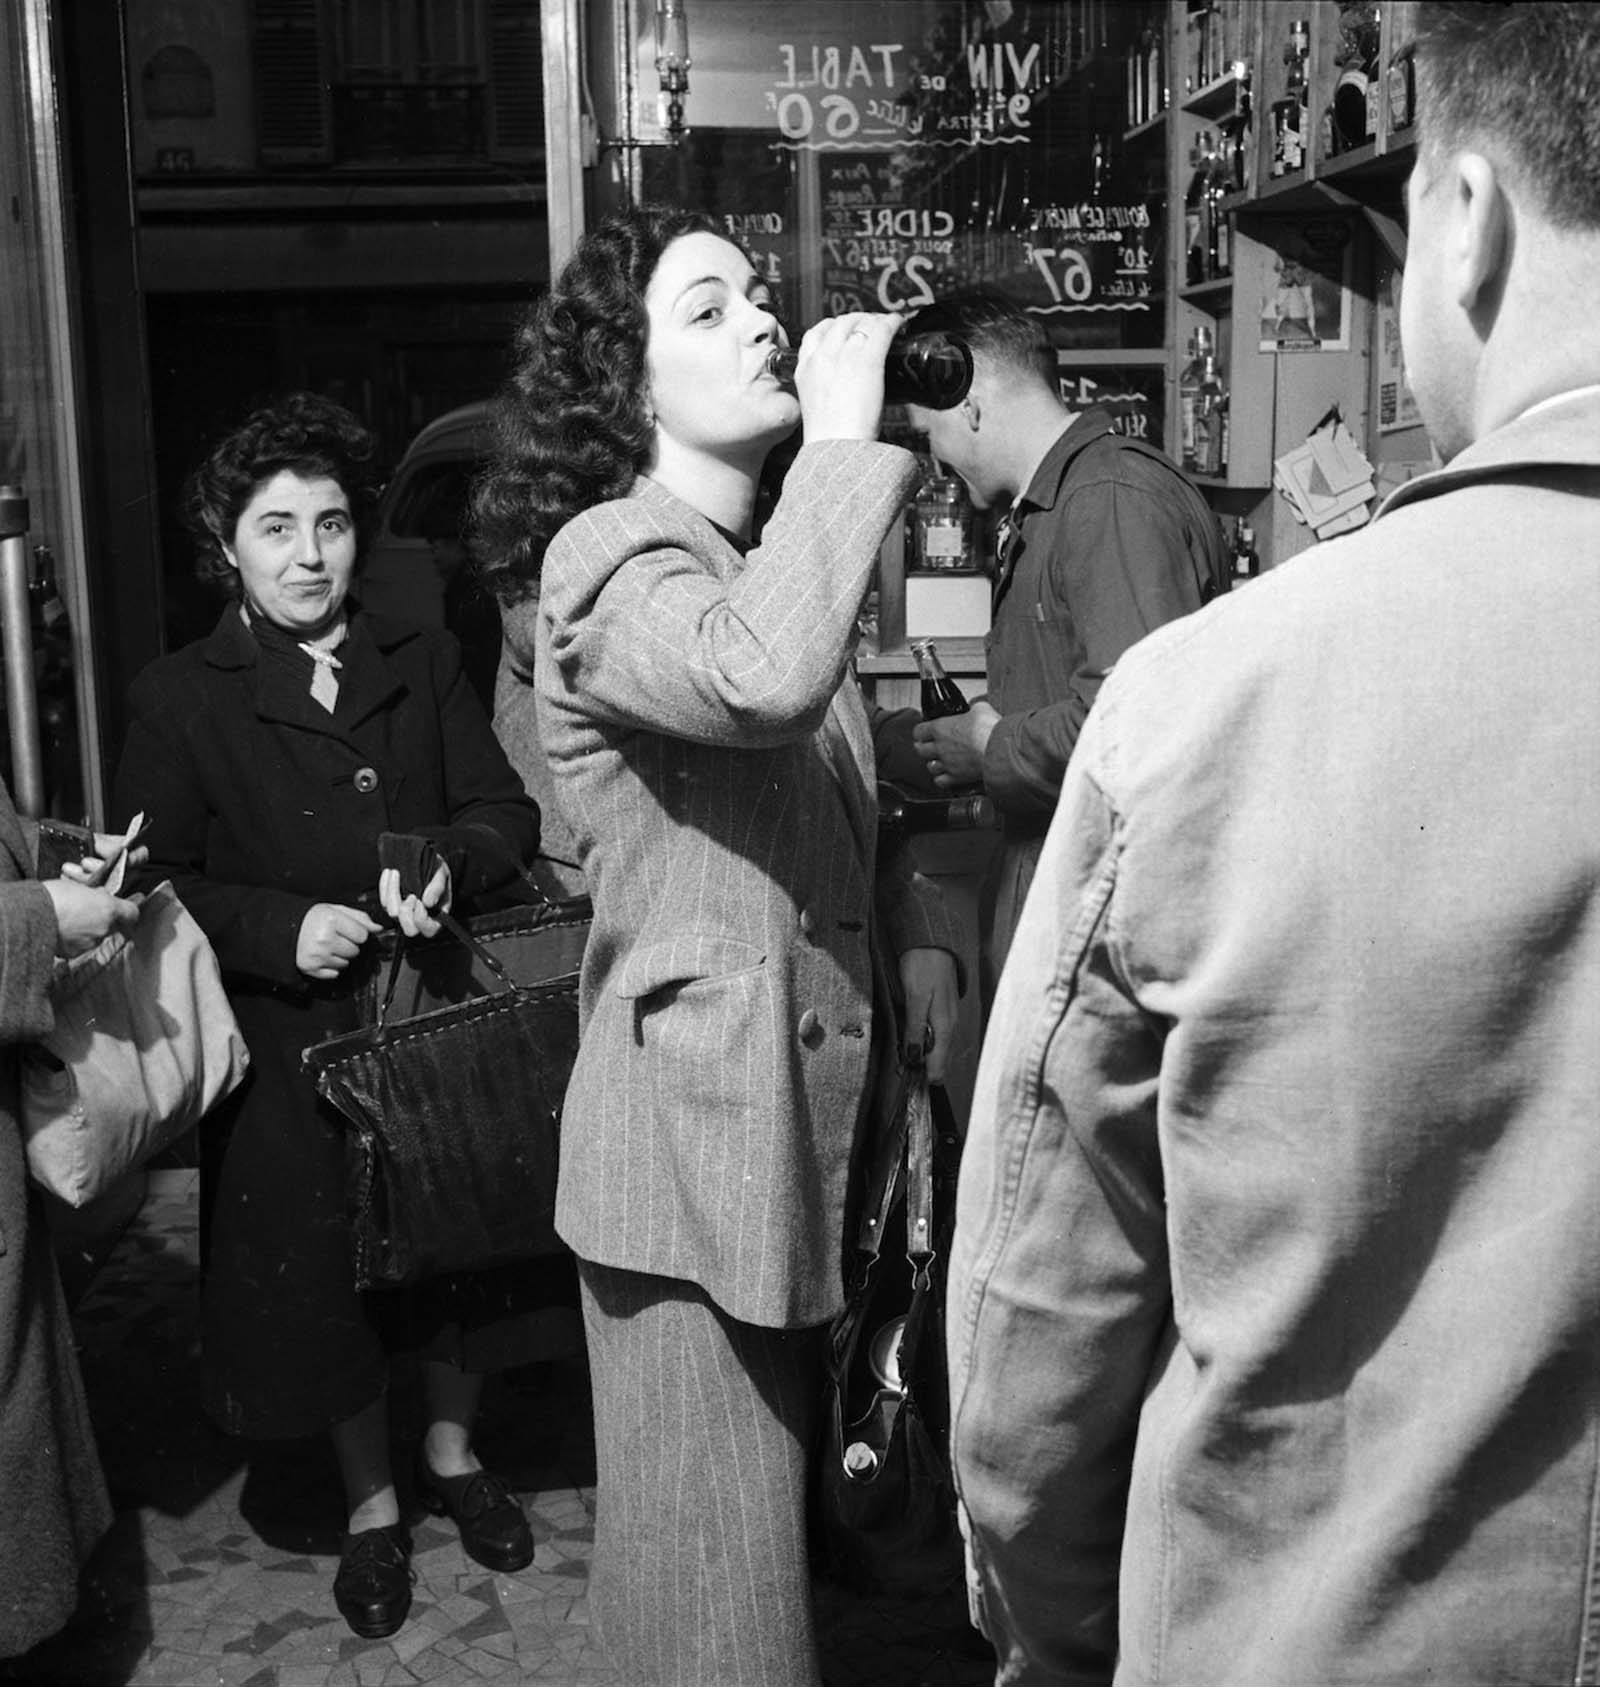 A young woman drinks a bottle of Coca-Cola in a Paris shop.